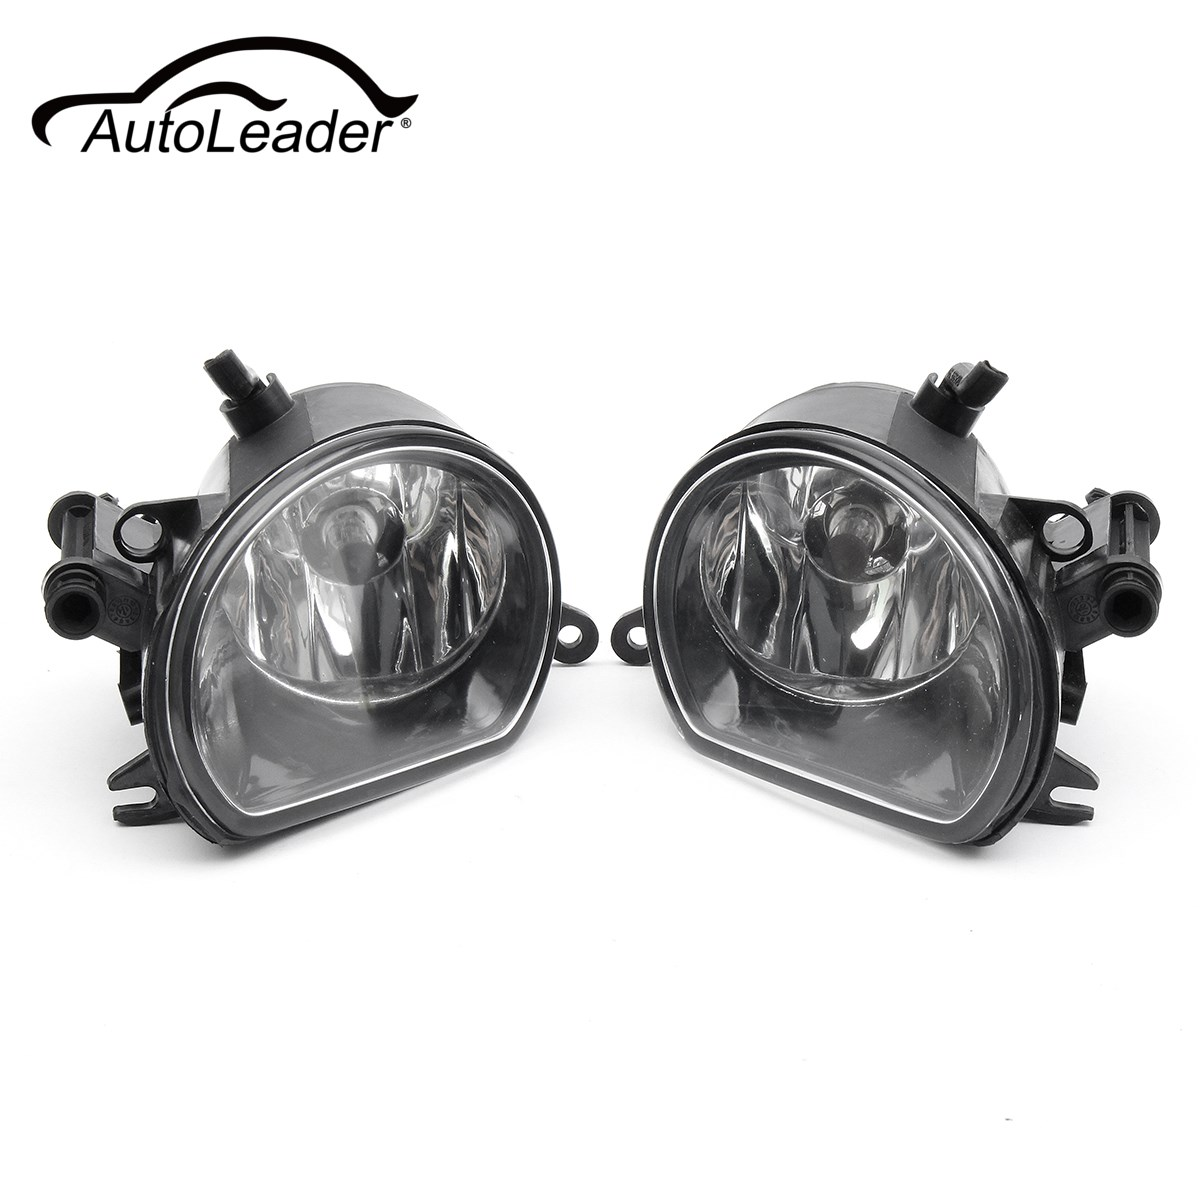 AutoLeader 1 Pair Left Right Clear Front Bumper LED H11 Fog Light Lamps Headlight For AUDI Q7 2010 2011 2012 2013 2014 2015 2pcs pair front lower bumper fog light fog lamps left